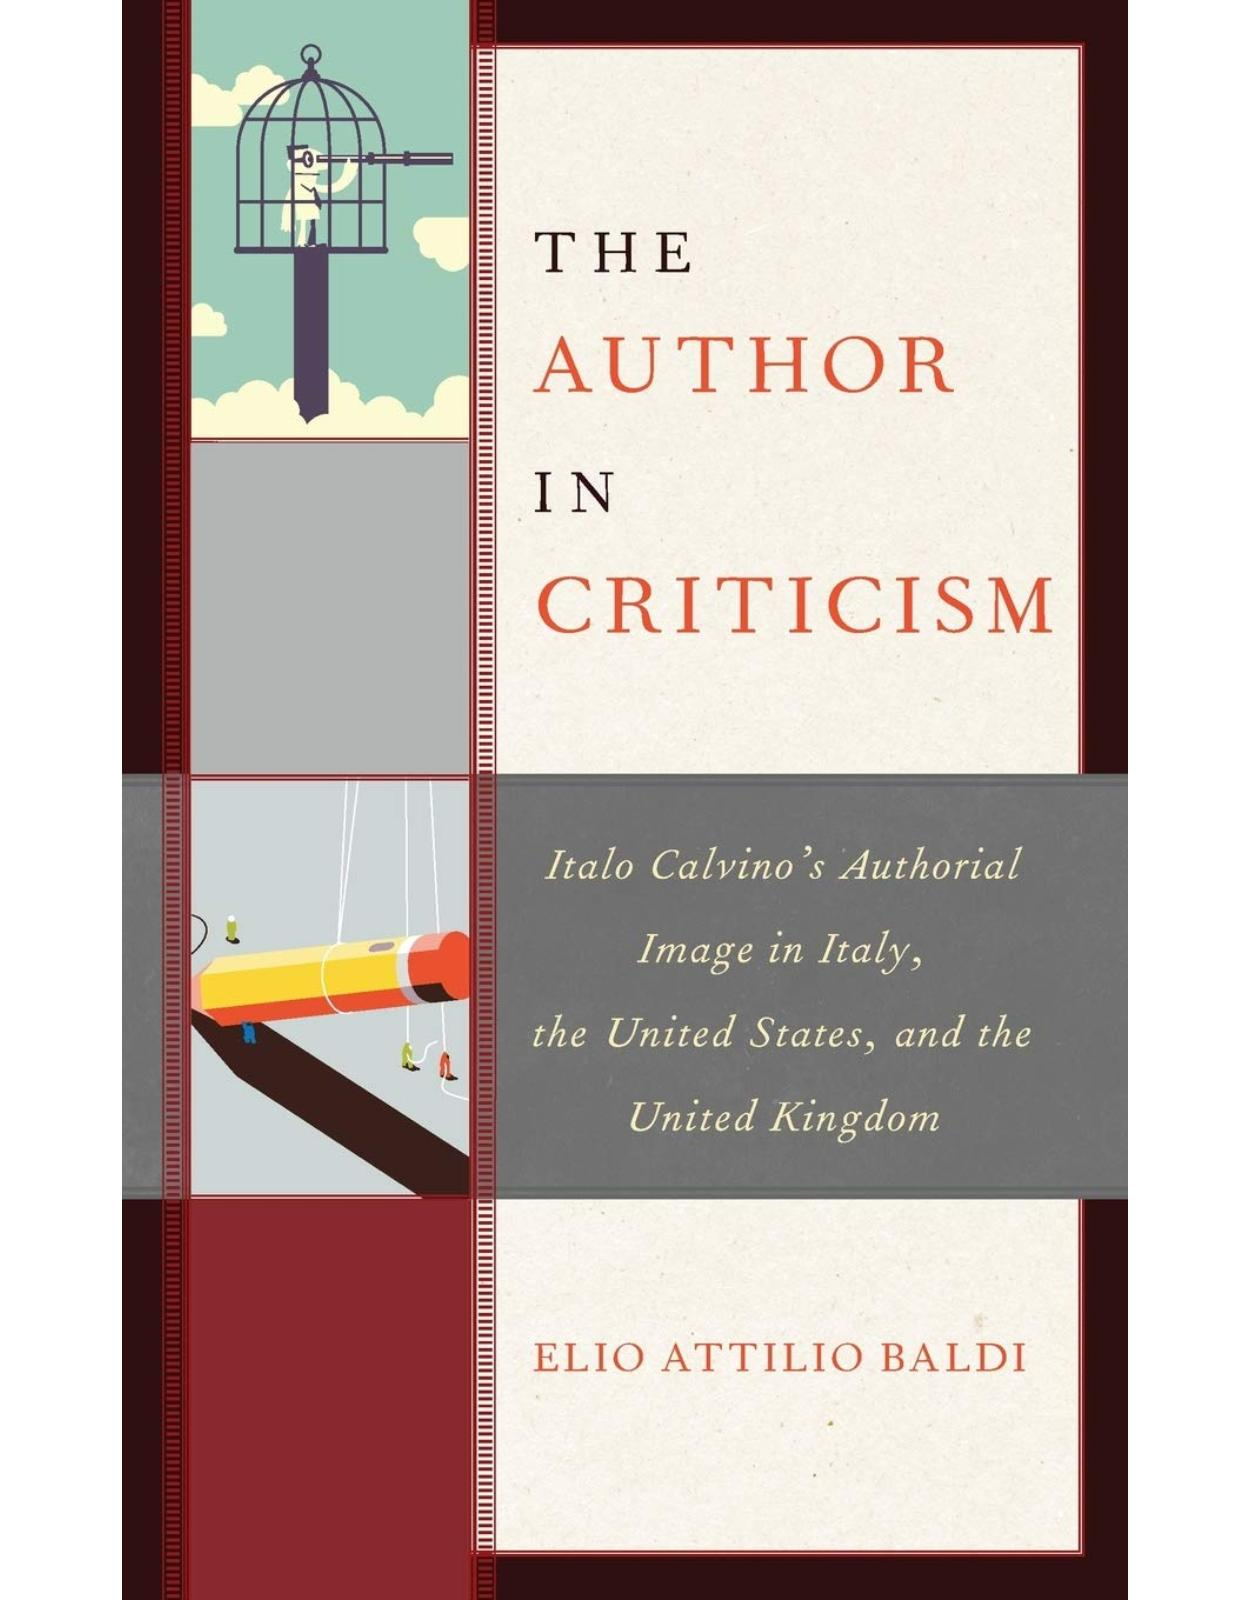 The Author in Criticism: Italo Calvino's Authorial Image in Italy, the United States, and the United Kingdom